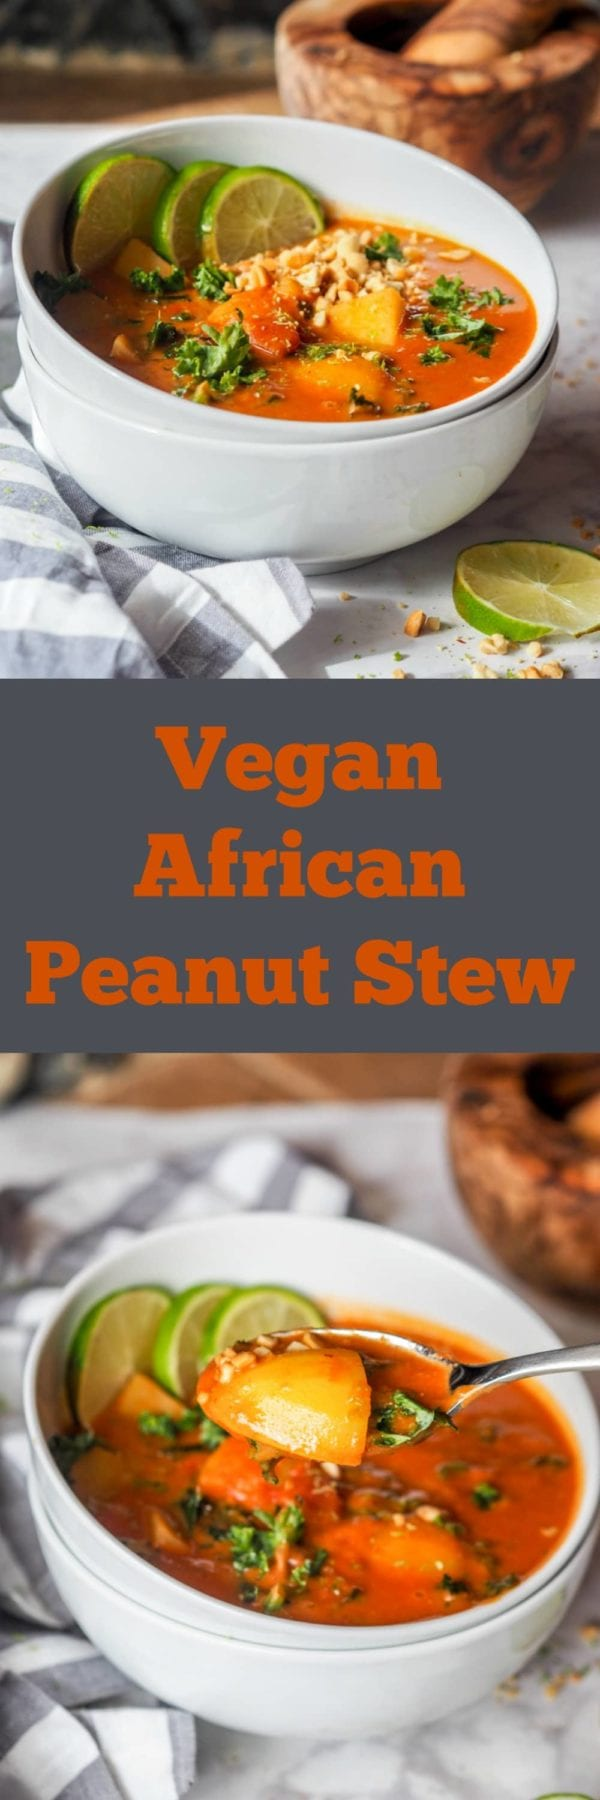 New favorite vegan plant based comforting dinner - African Peanut Stew with Potatoes and Kale. The ultimate feel good healthy recipe ready in 40 minutes.